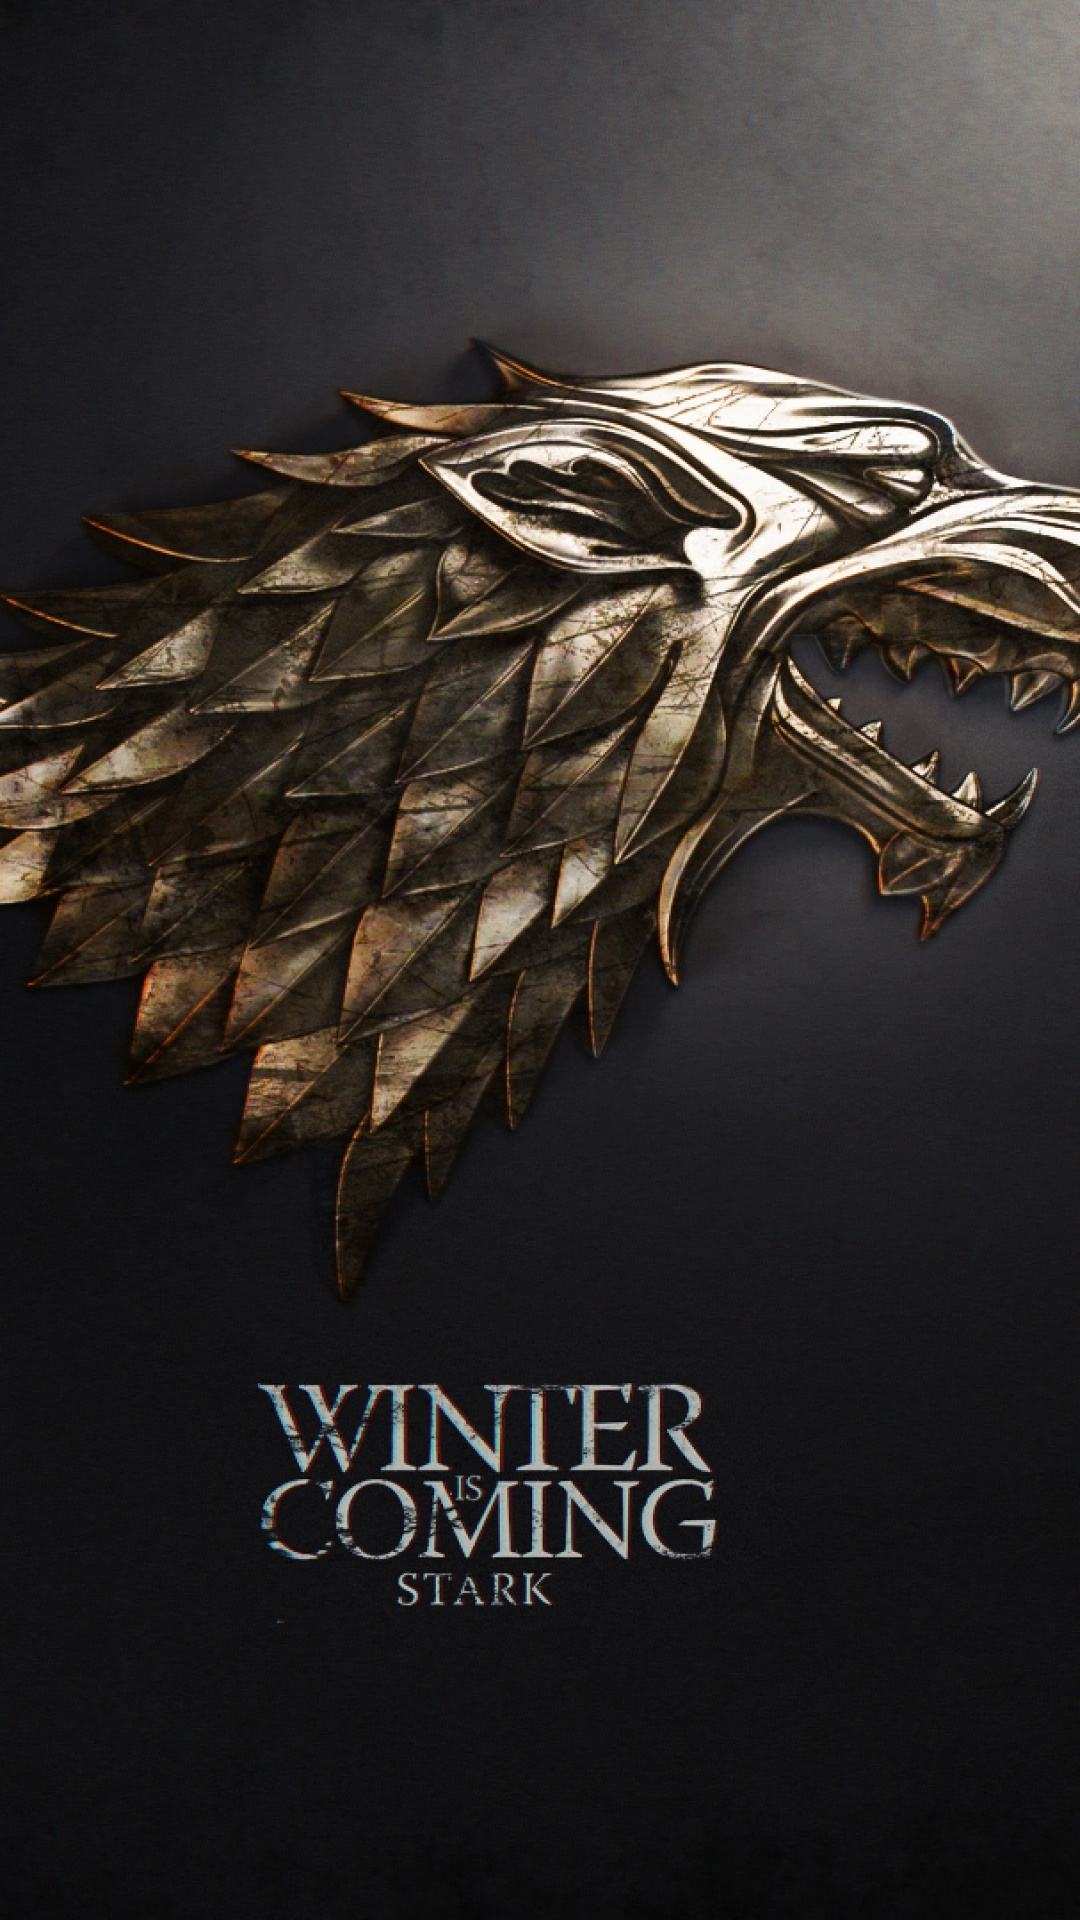 Game of Thrones wallpapers for iPhone 1080x1920